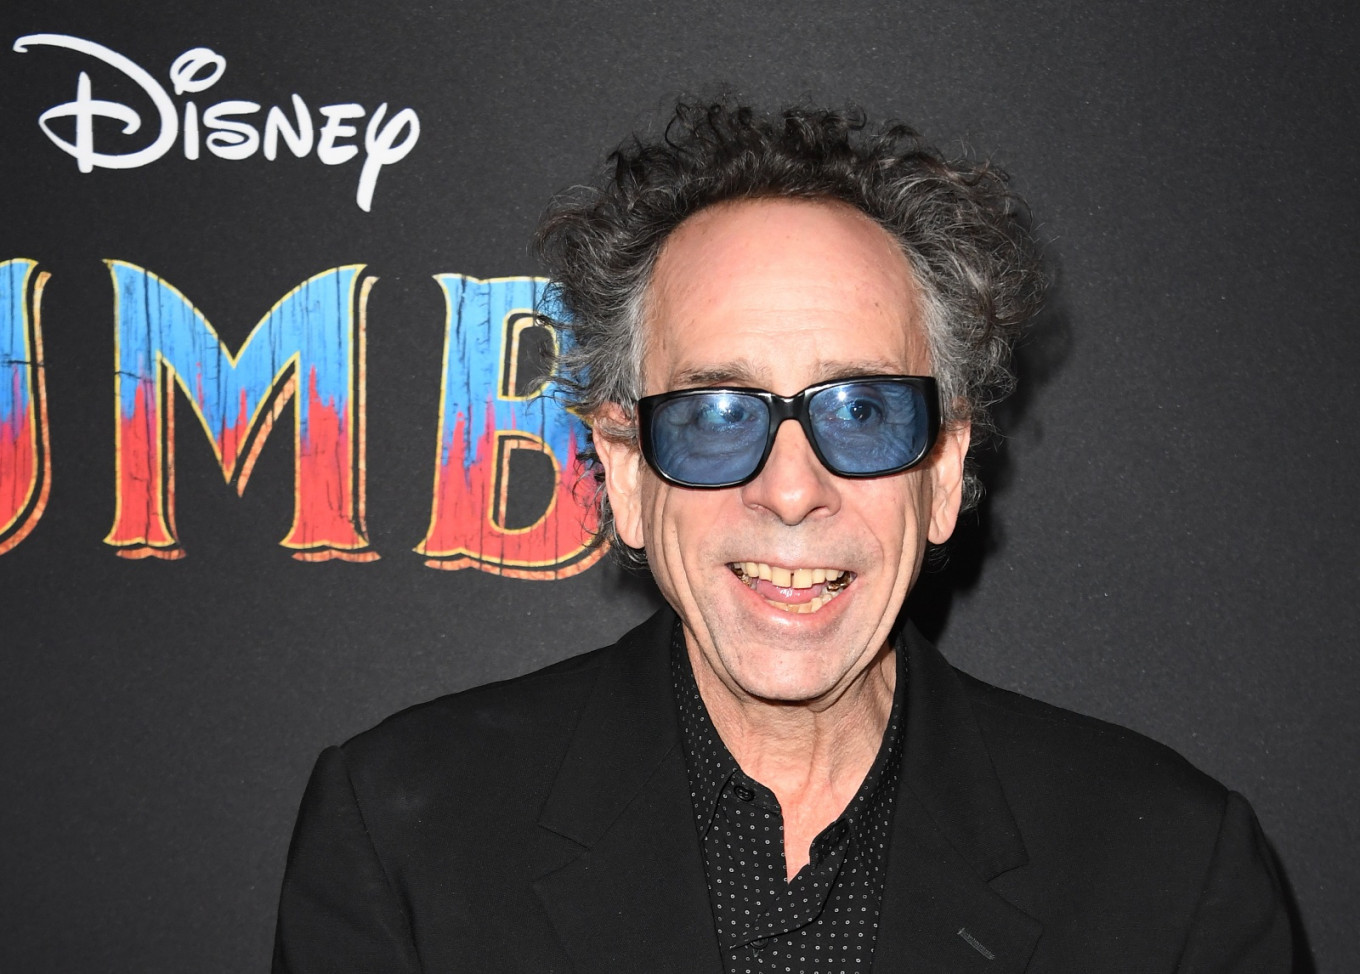 Filmmaking icon Tim Burton soars to new heights with 'Dumbo'